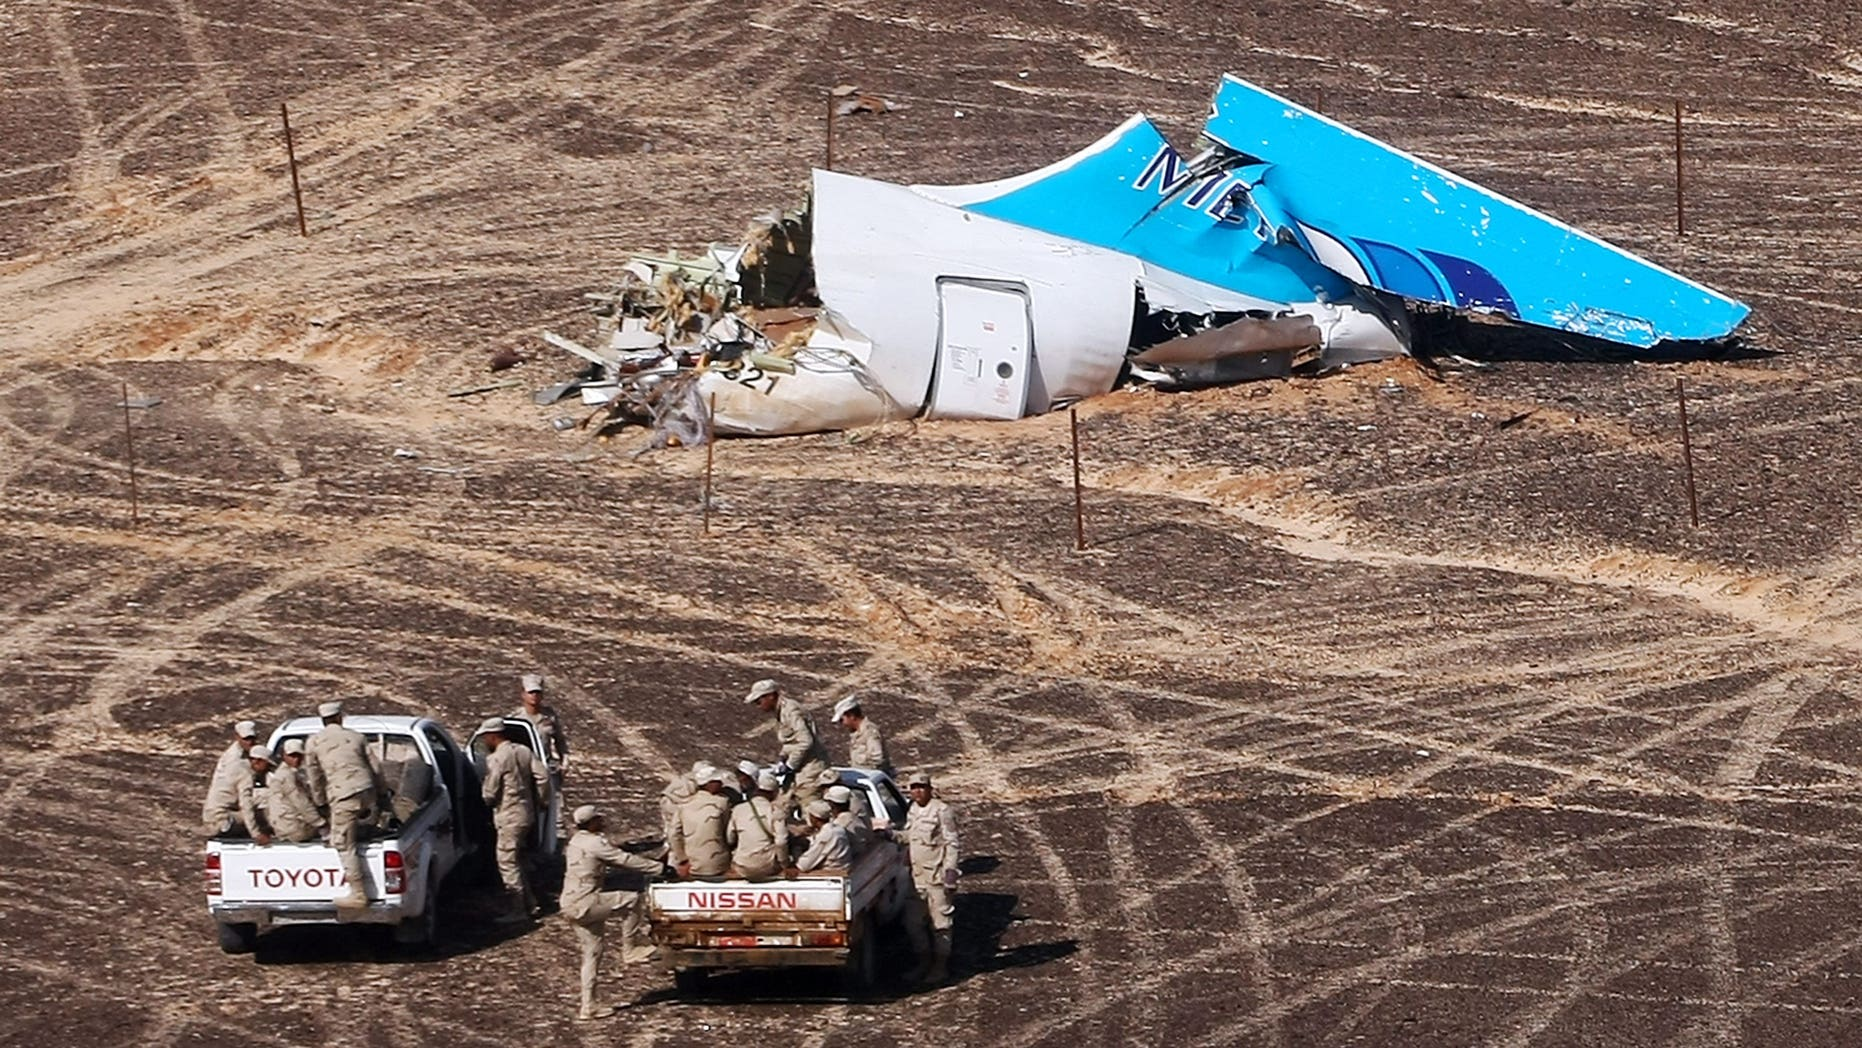 Nov. 2, 2015- Egyptian military vehicles approach a plane's tail at the wreckage of a passenger jet bound for St. Petersburg in Russia that crashed in Hassana, Egypt on  Nov. 1, 2015. (Maxim Grigoriev/Russian Ministry for Emergency Situations via AP)